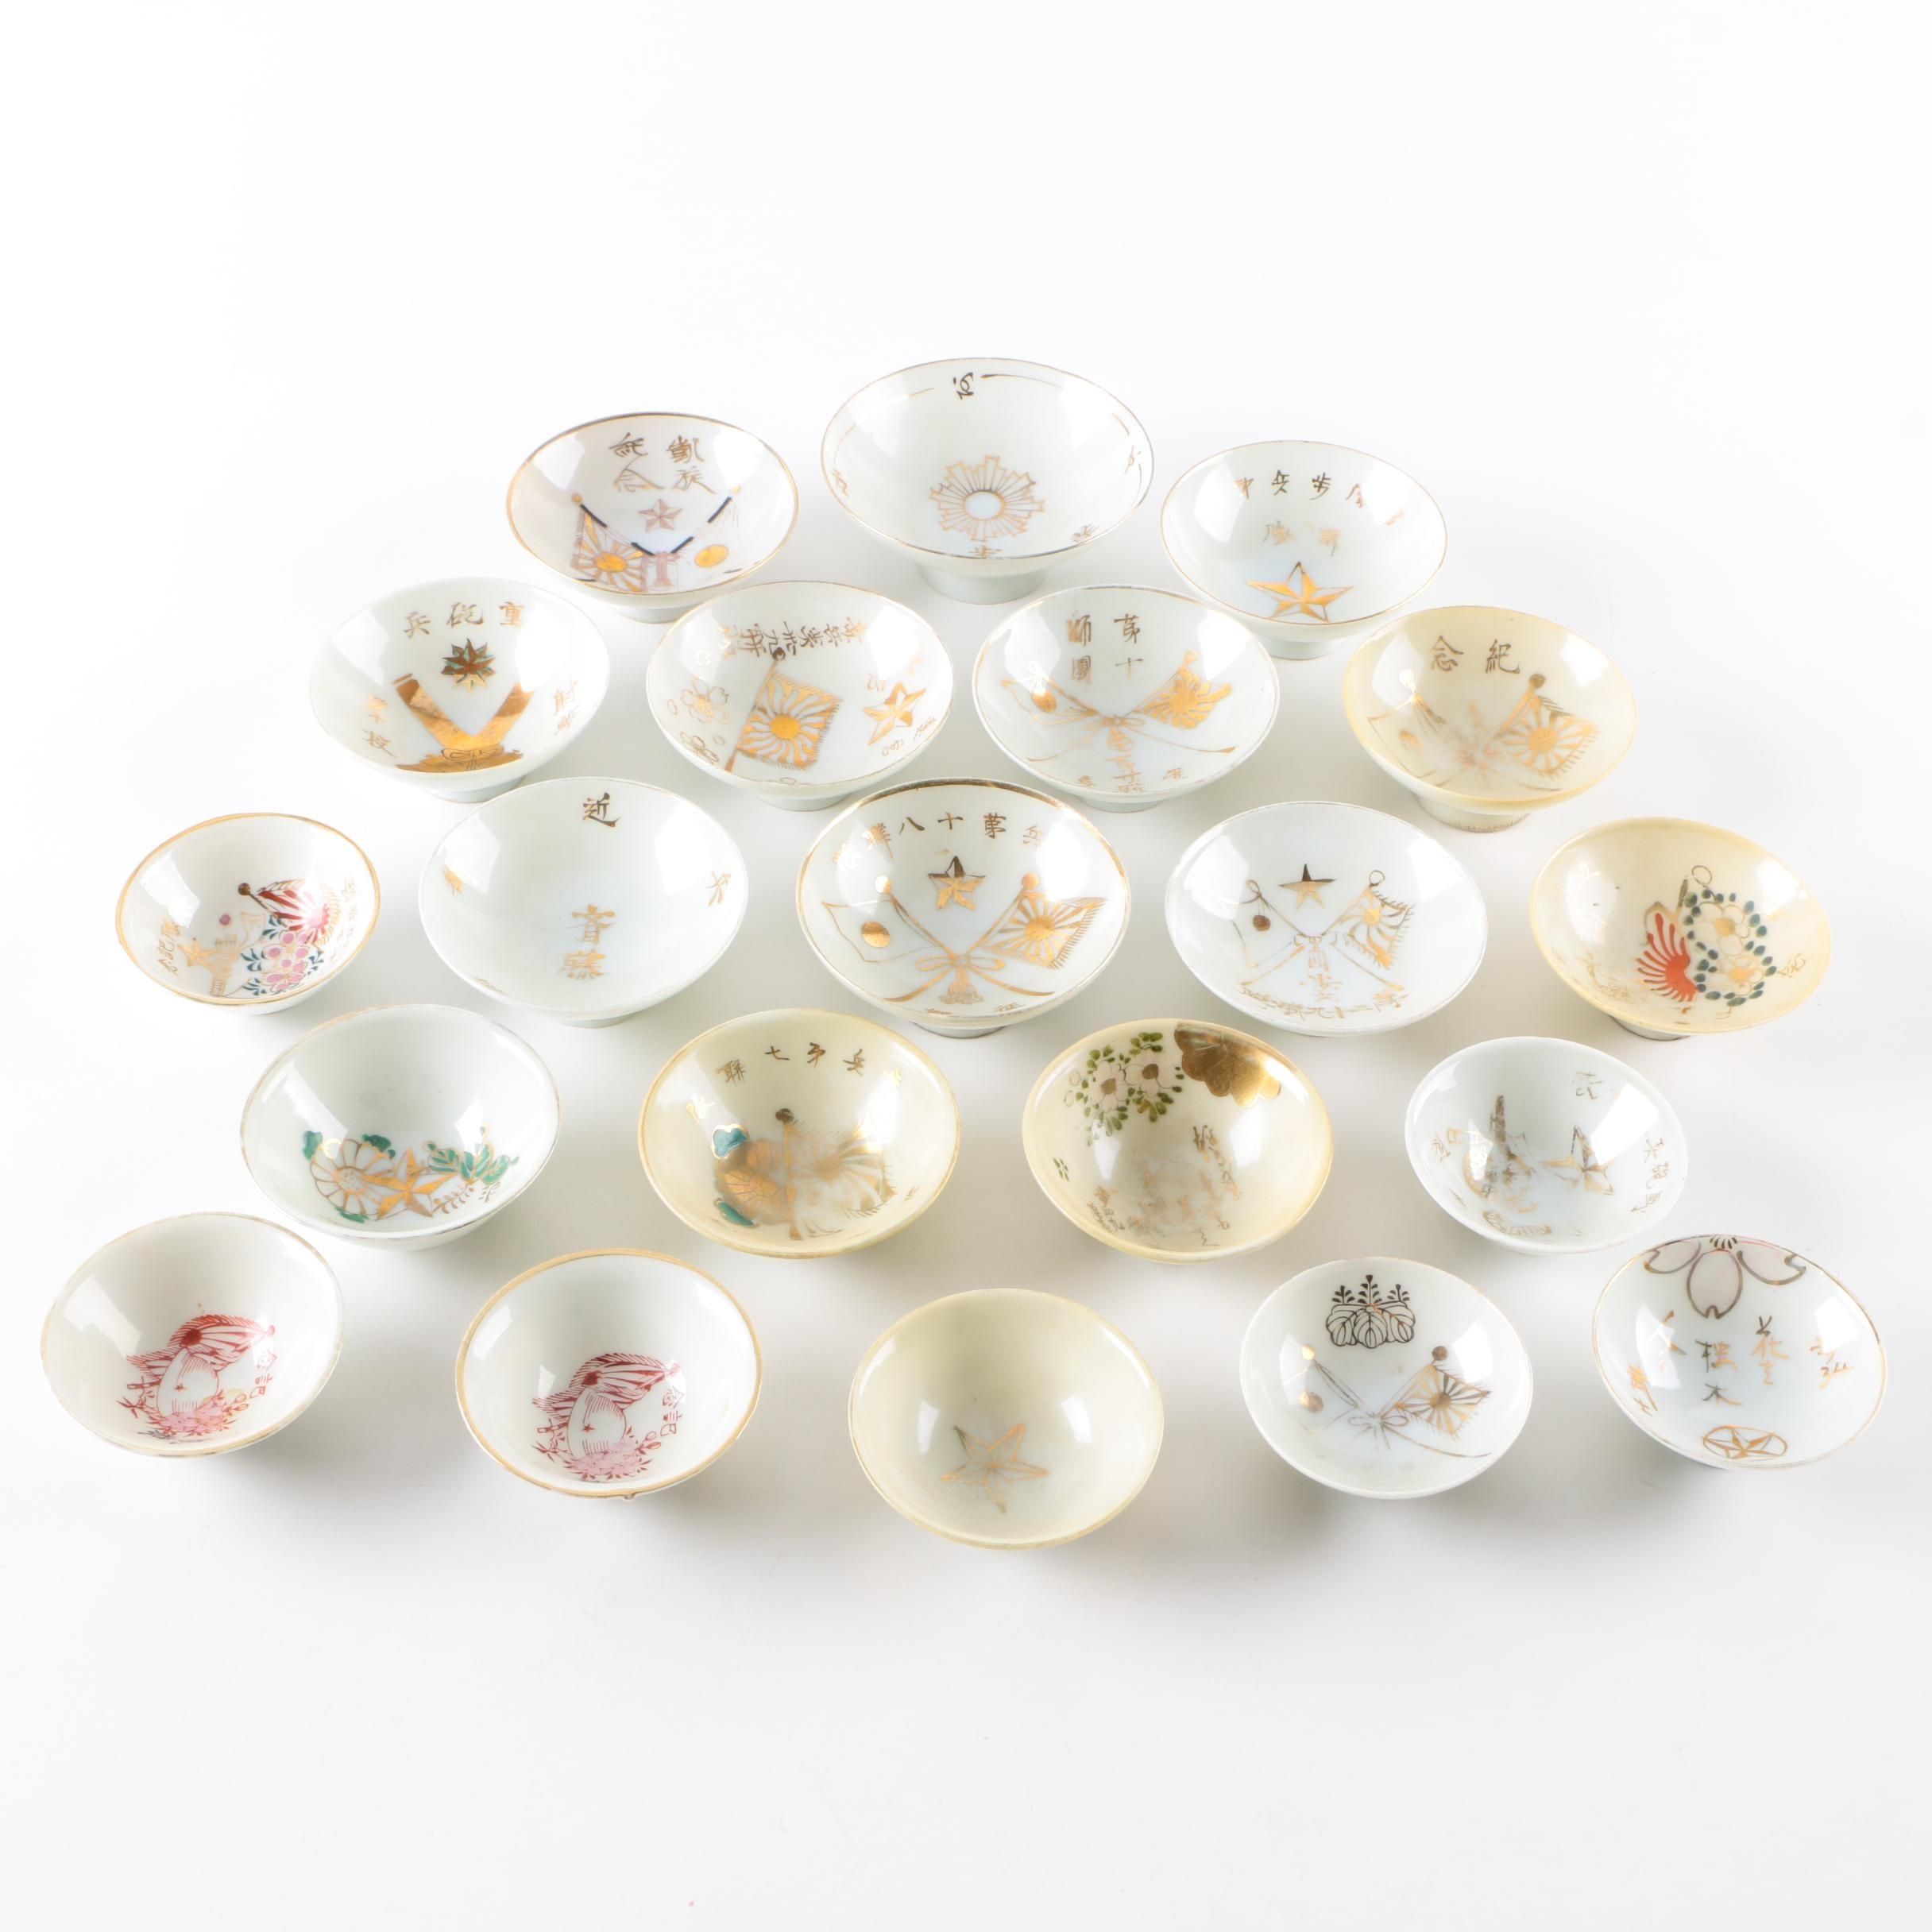 Collection of Commemorative WWII Japanese Sake Cups